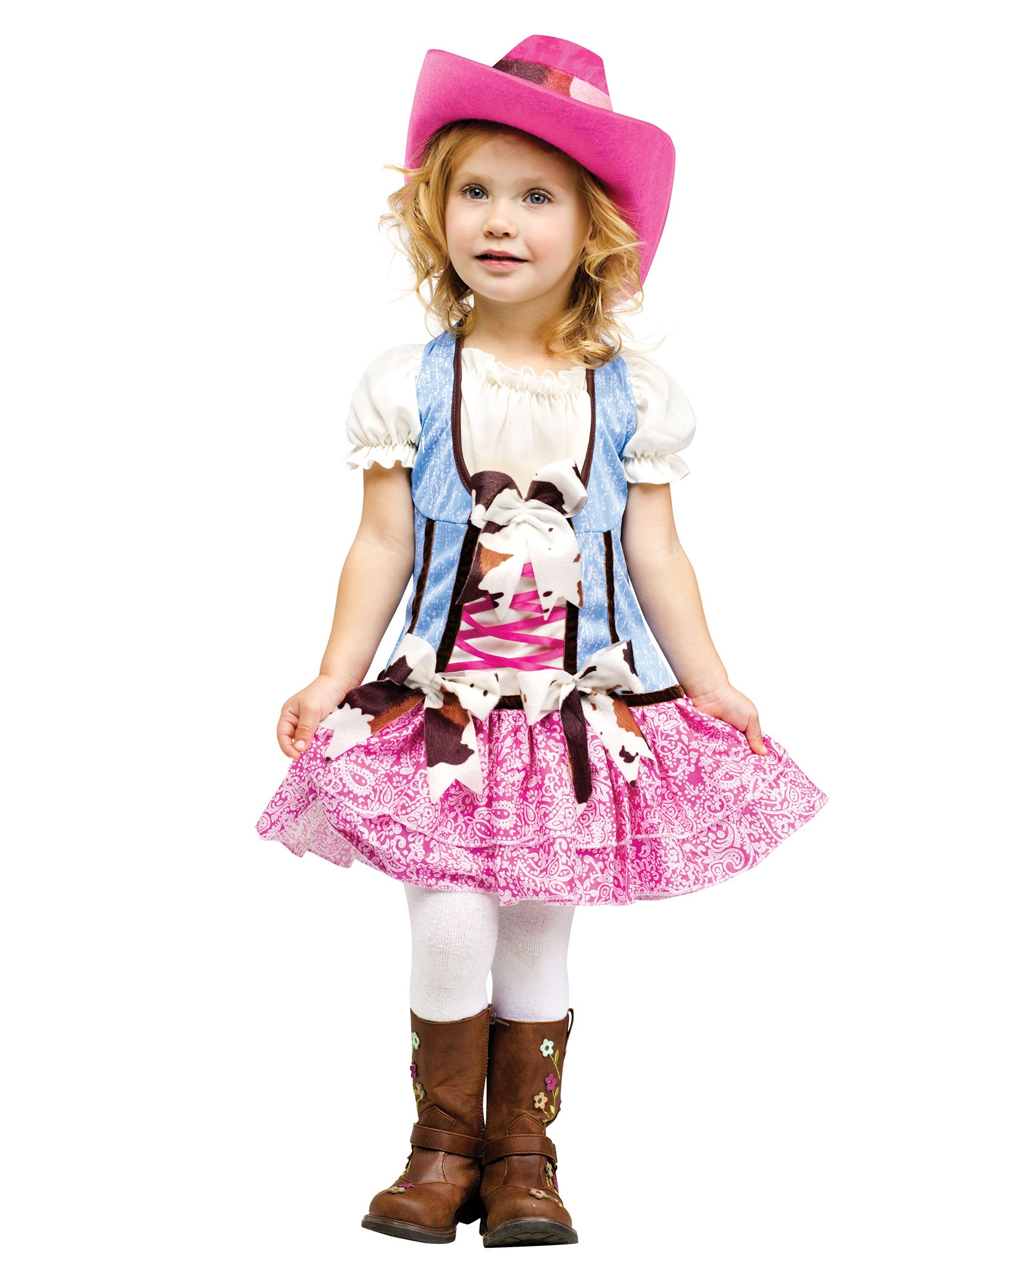 Cowgirl Kids Costume With Cowboy Hat for carnival  602ea1ffd9c4